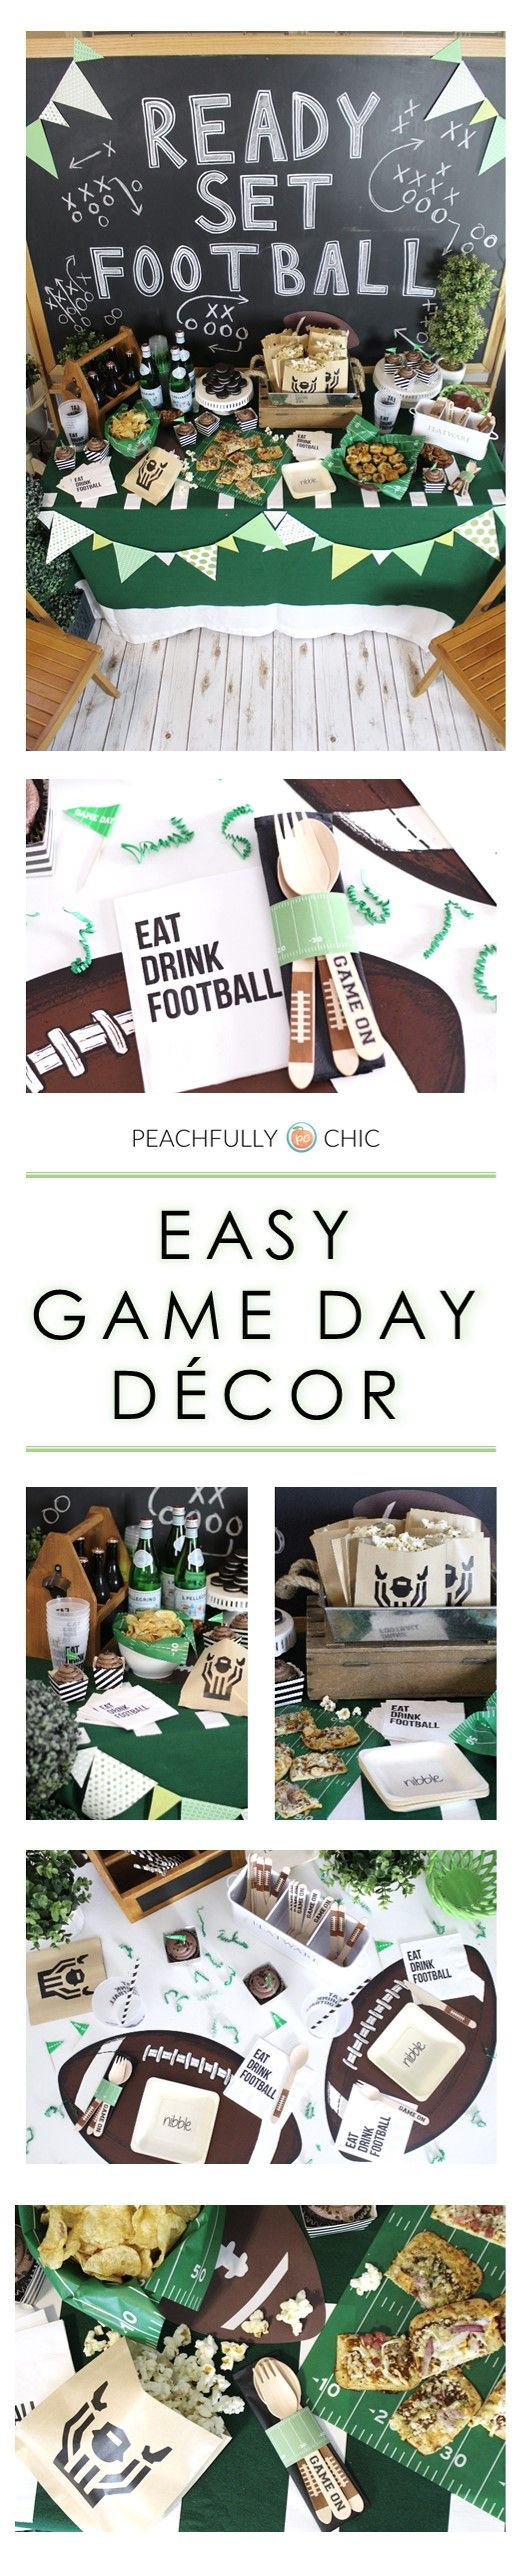 Easy Football Game Day Decor:  Draft Party Inspiration & Tailgate Essentials